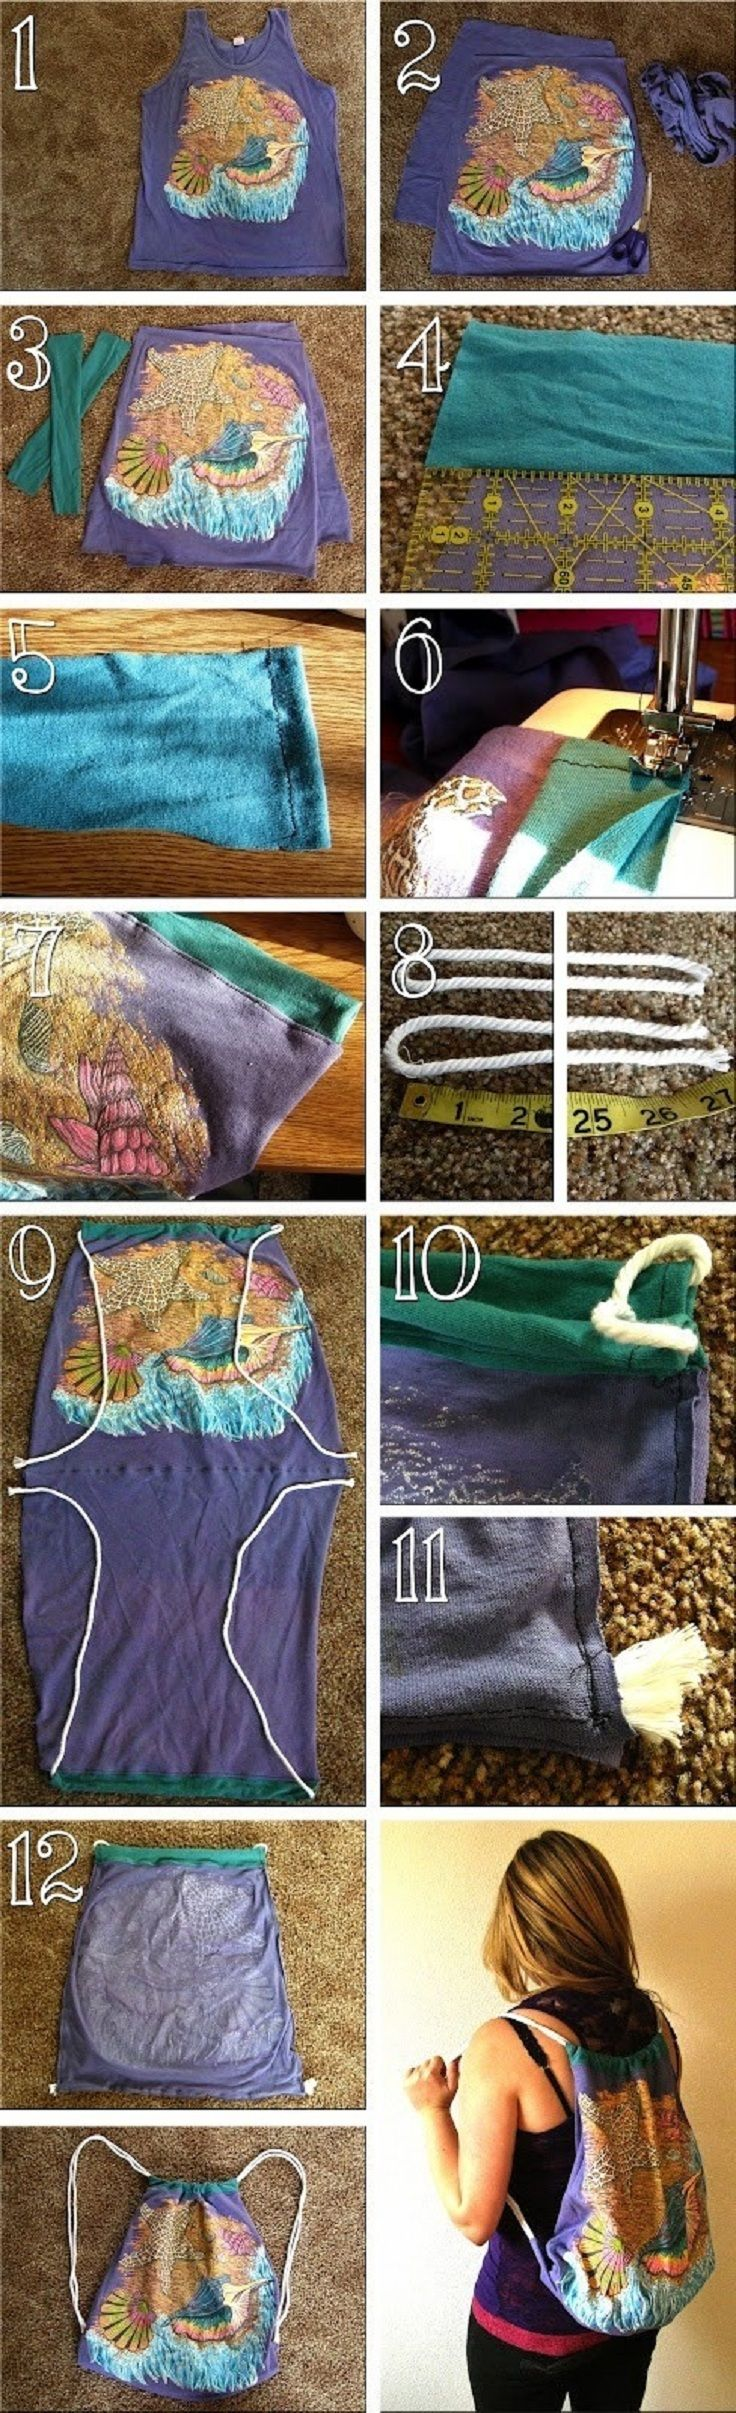 sewing-projects_08